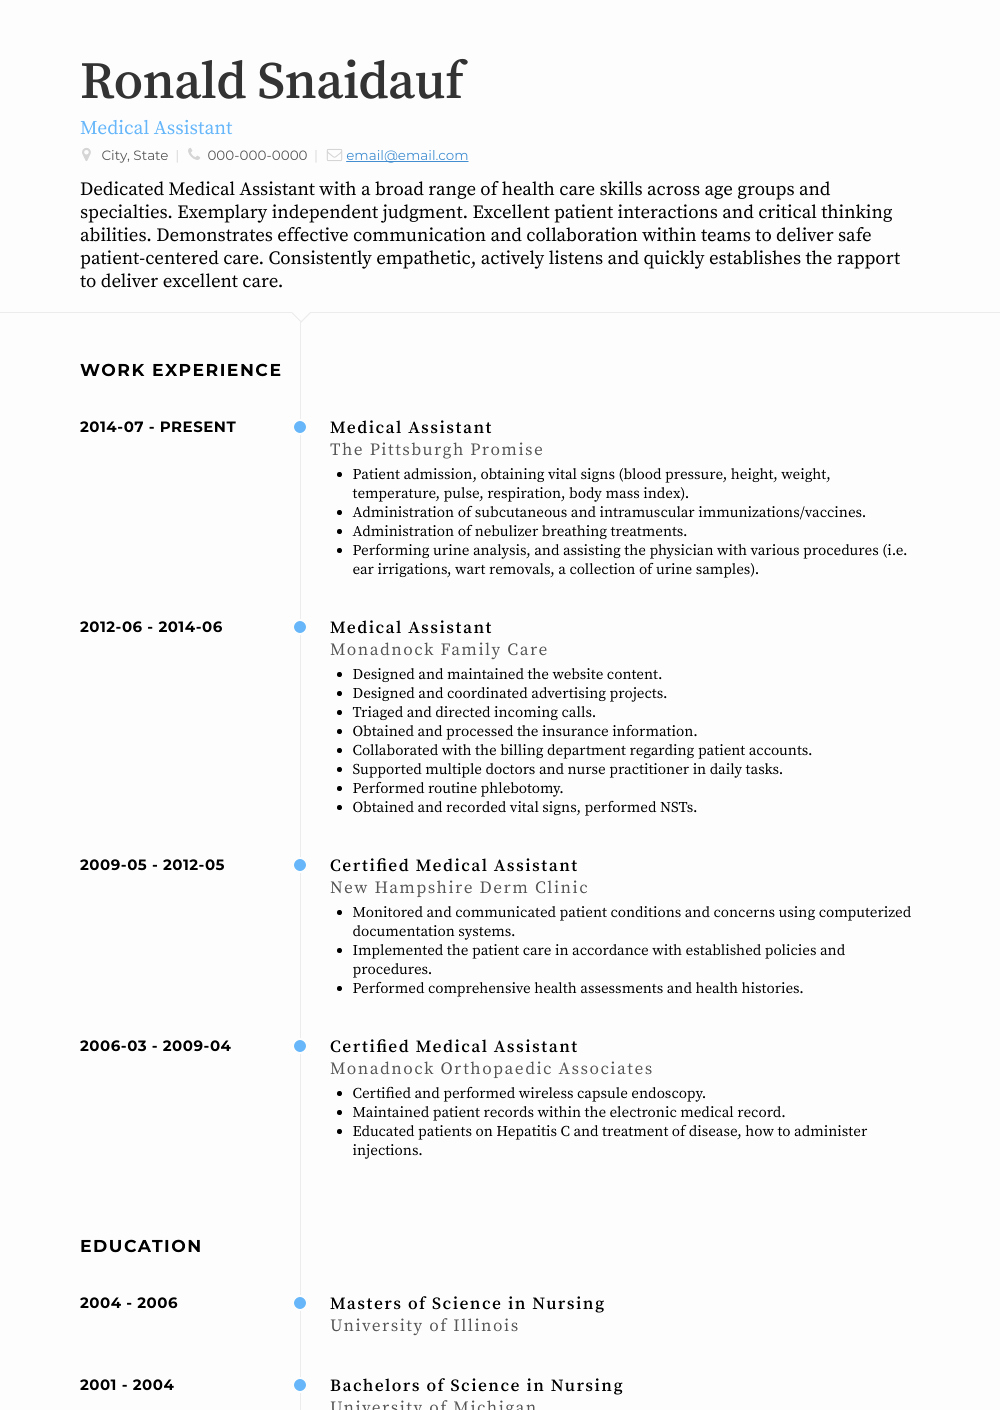 Medical assistant Resume Template Best Of Medical assistant Resume Samples & Templates